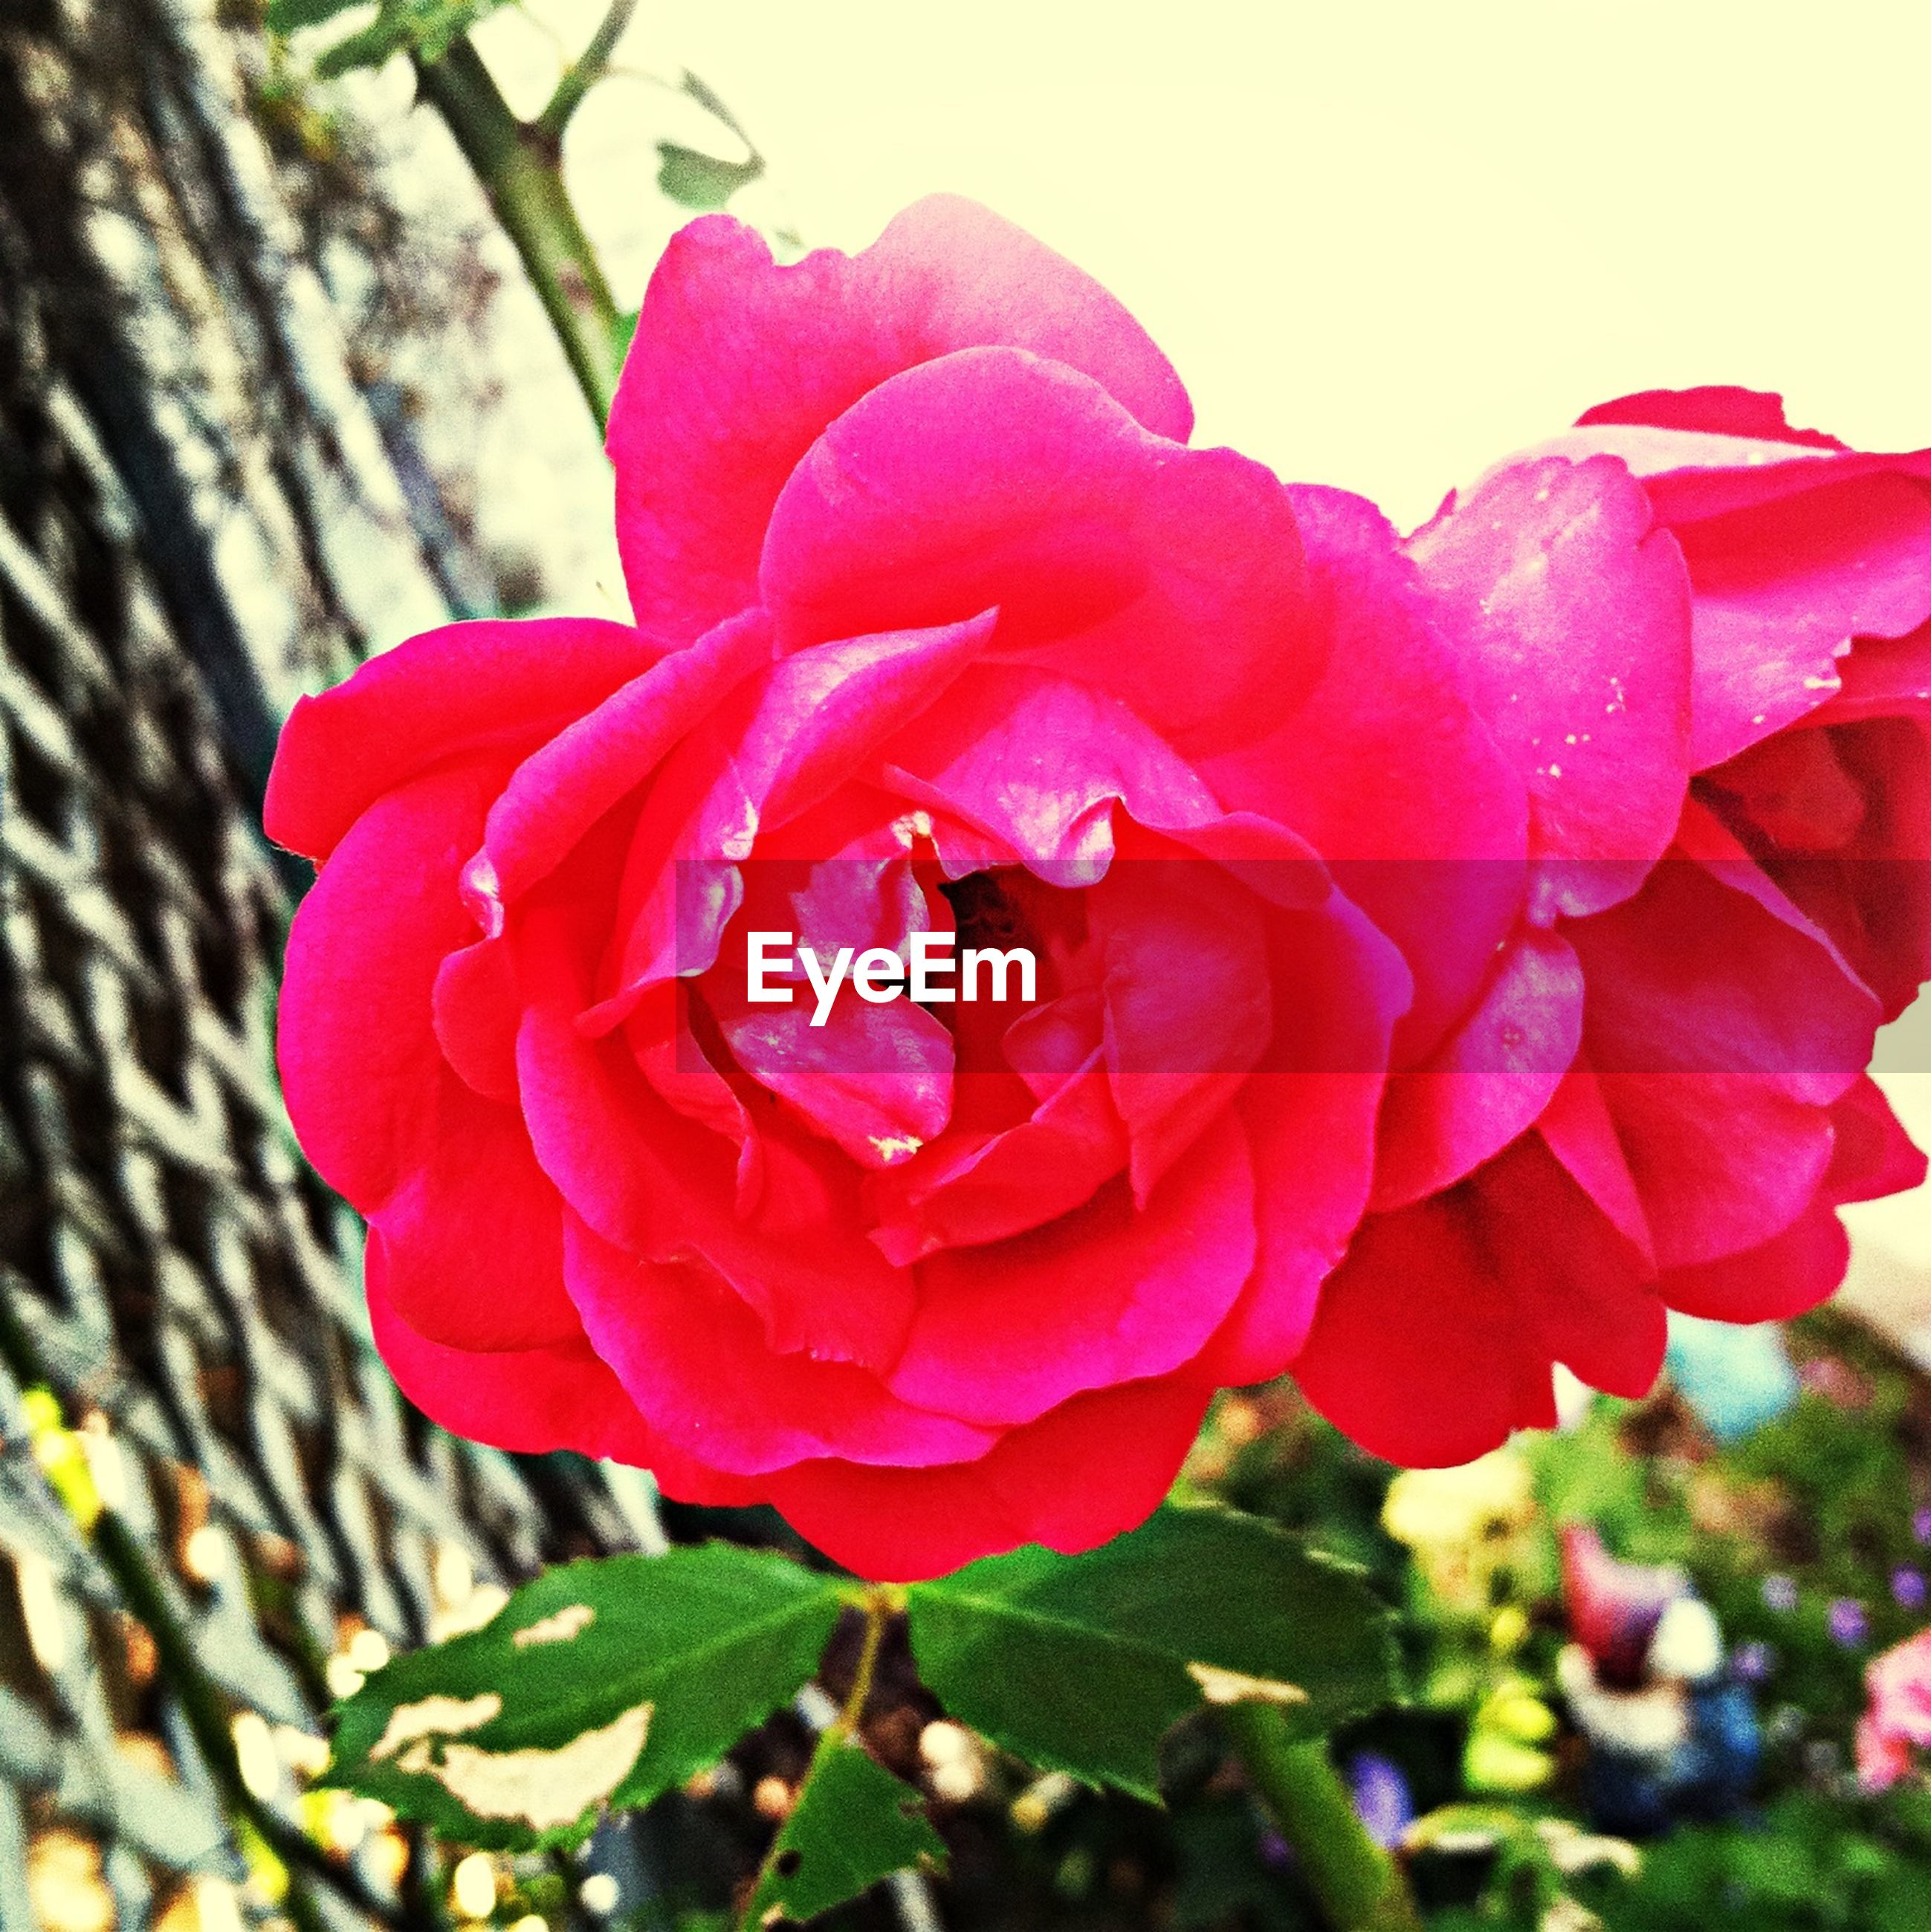 flower, petal, flower head, freshness, fragility, rose - flower, close-up, beauty in nature, red, growth, pink color, single flower, blooming, focus on foreground, nature, drop, plant, in bloom, rose, wet